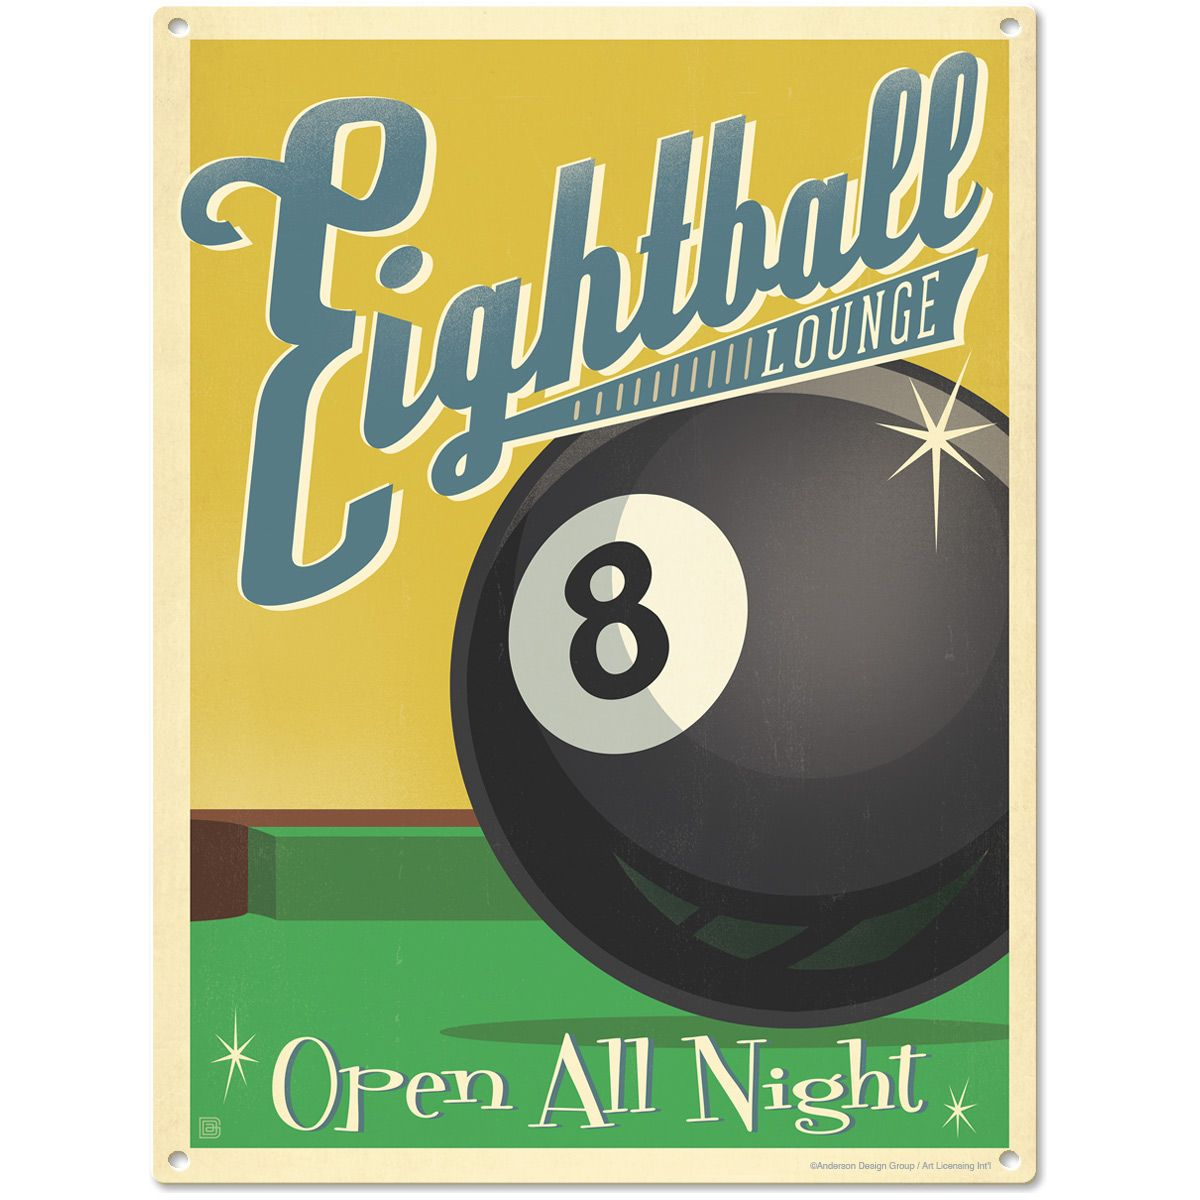 Pin by PBH Billiards & More on Billiards signs | Pinterest | Metals ...